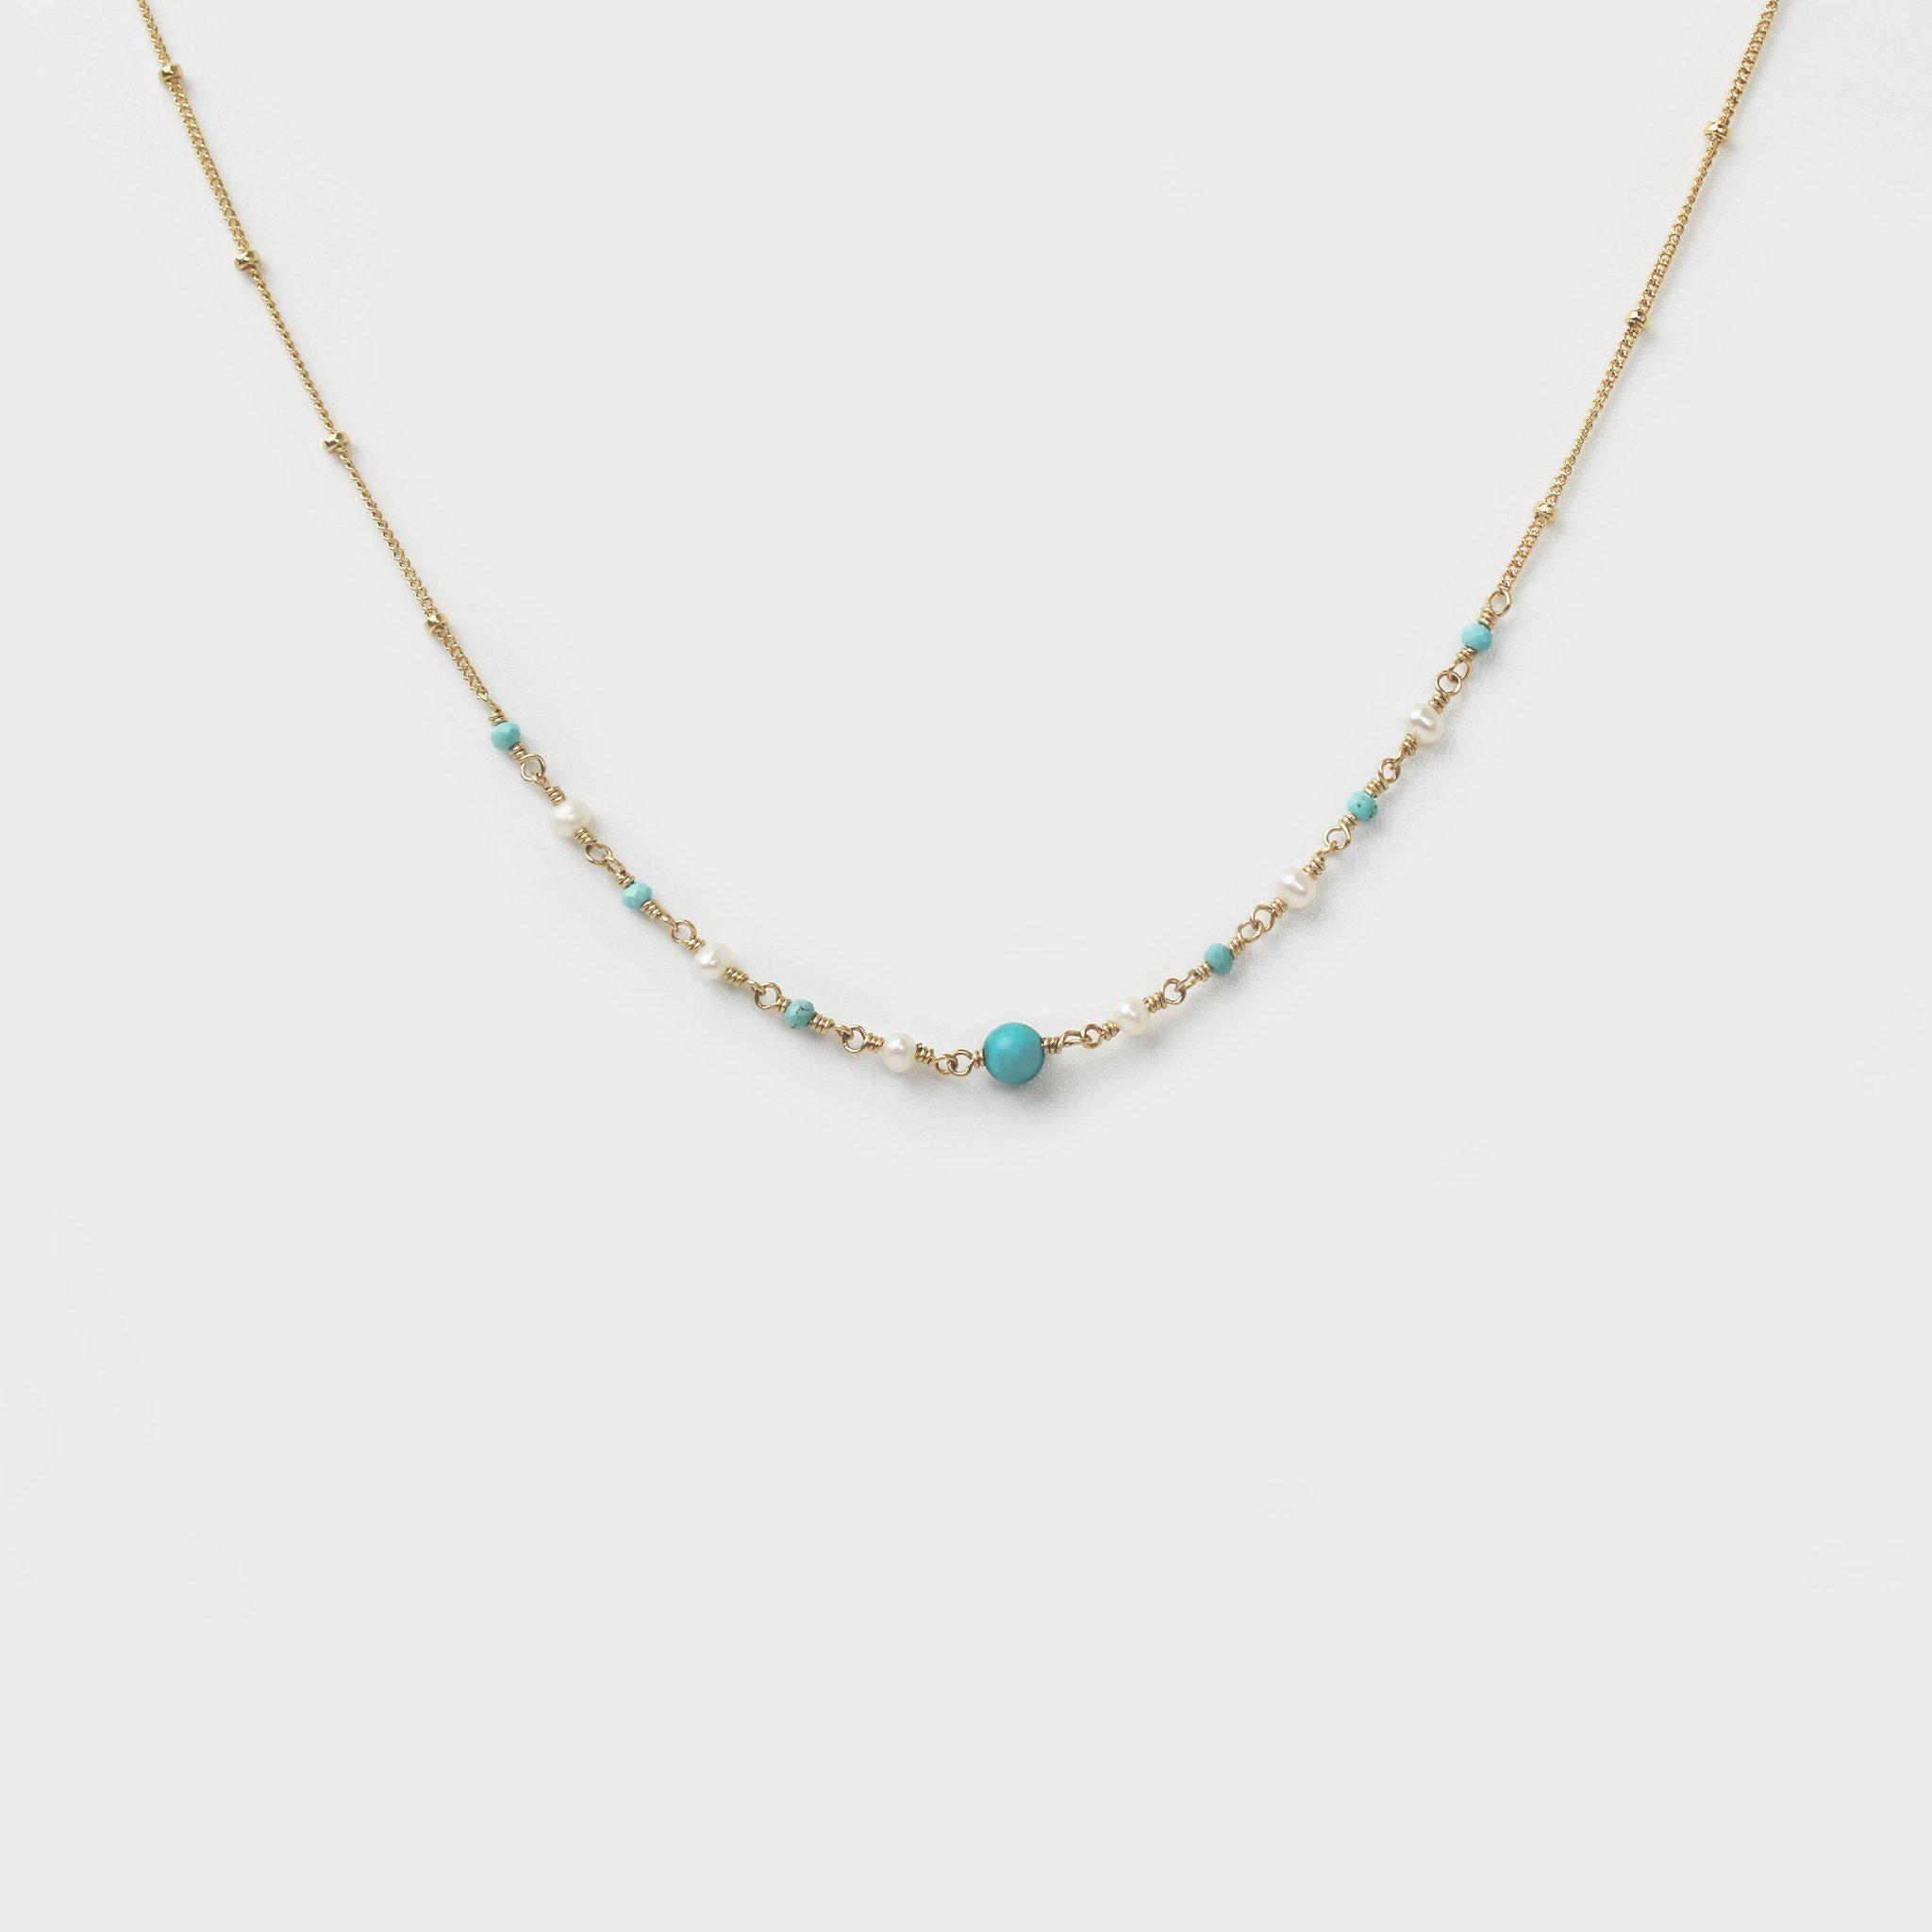 Turquoise and Pearl Necklace-Adorn Necklace-La Meno